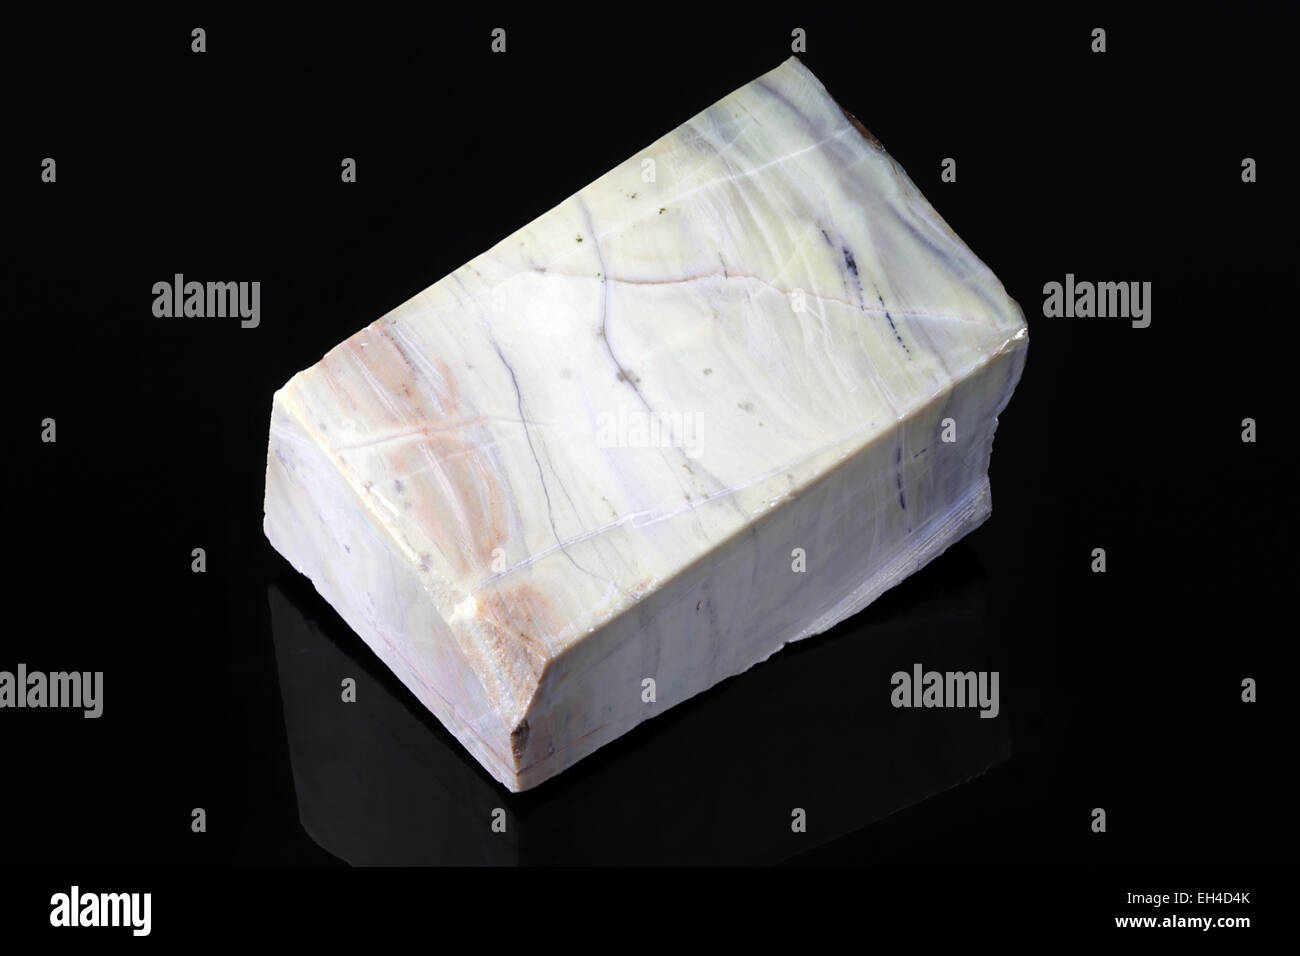 Archaen Butterstone - Predates the dinosaurs by over 2500 million years - From the Greenstone Belt of South Africa - Stock Image